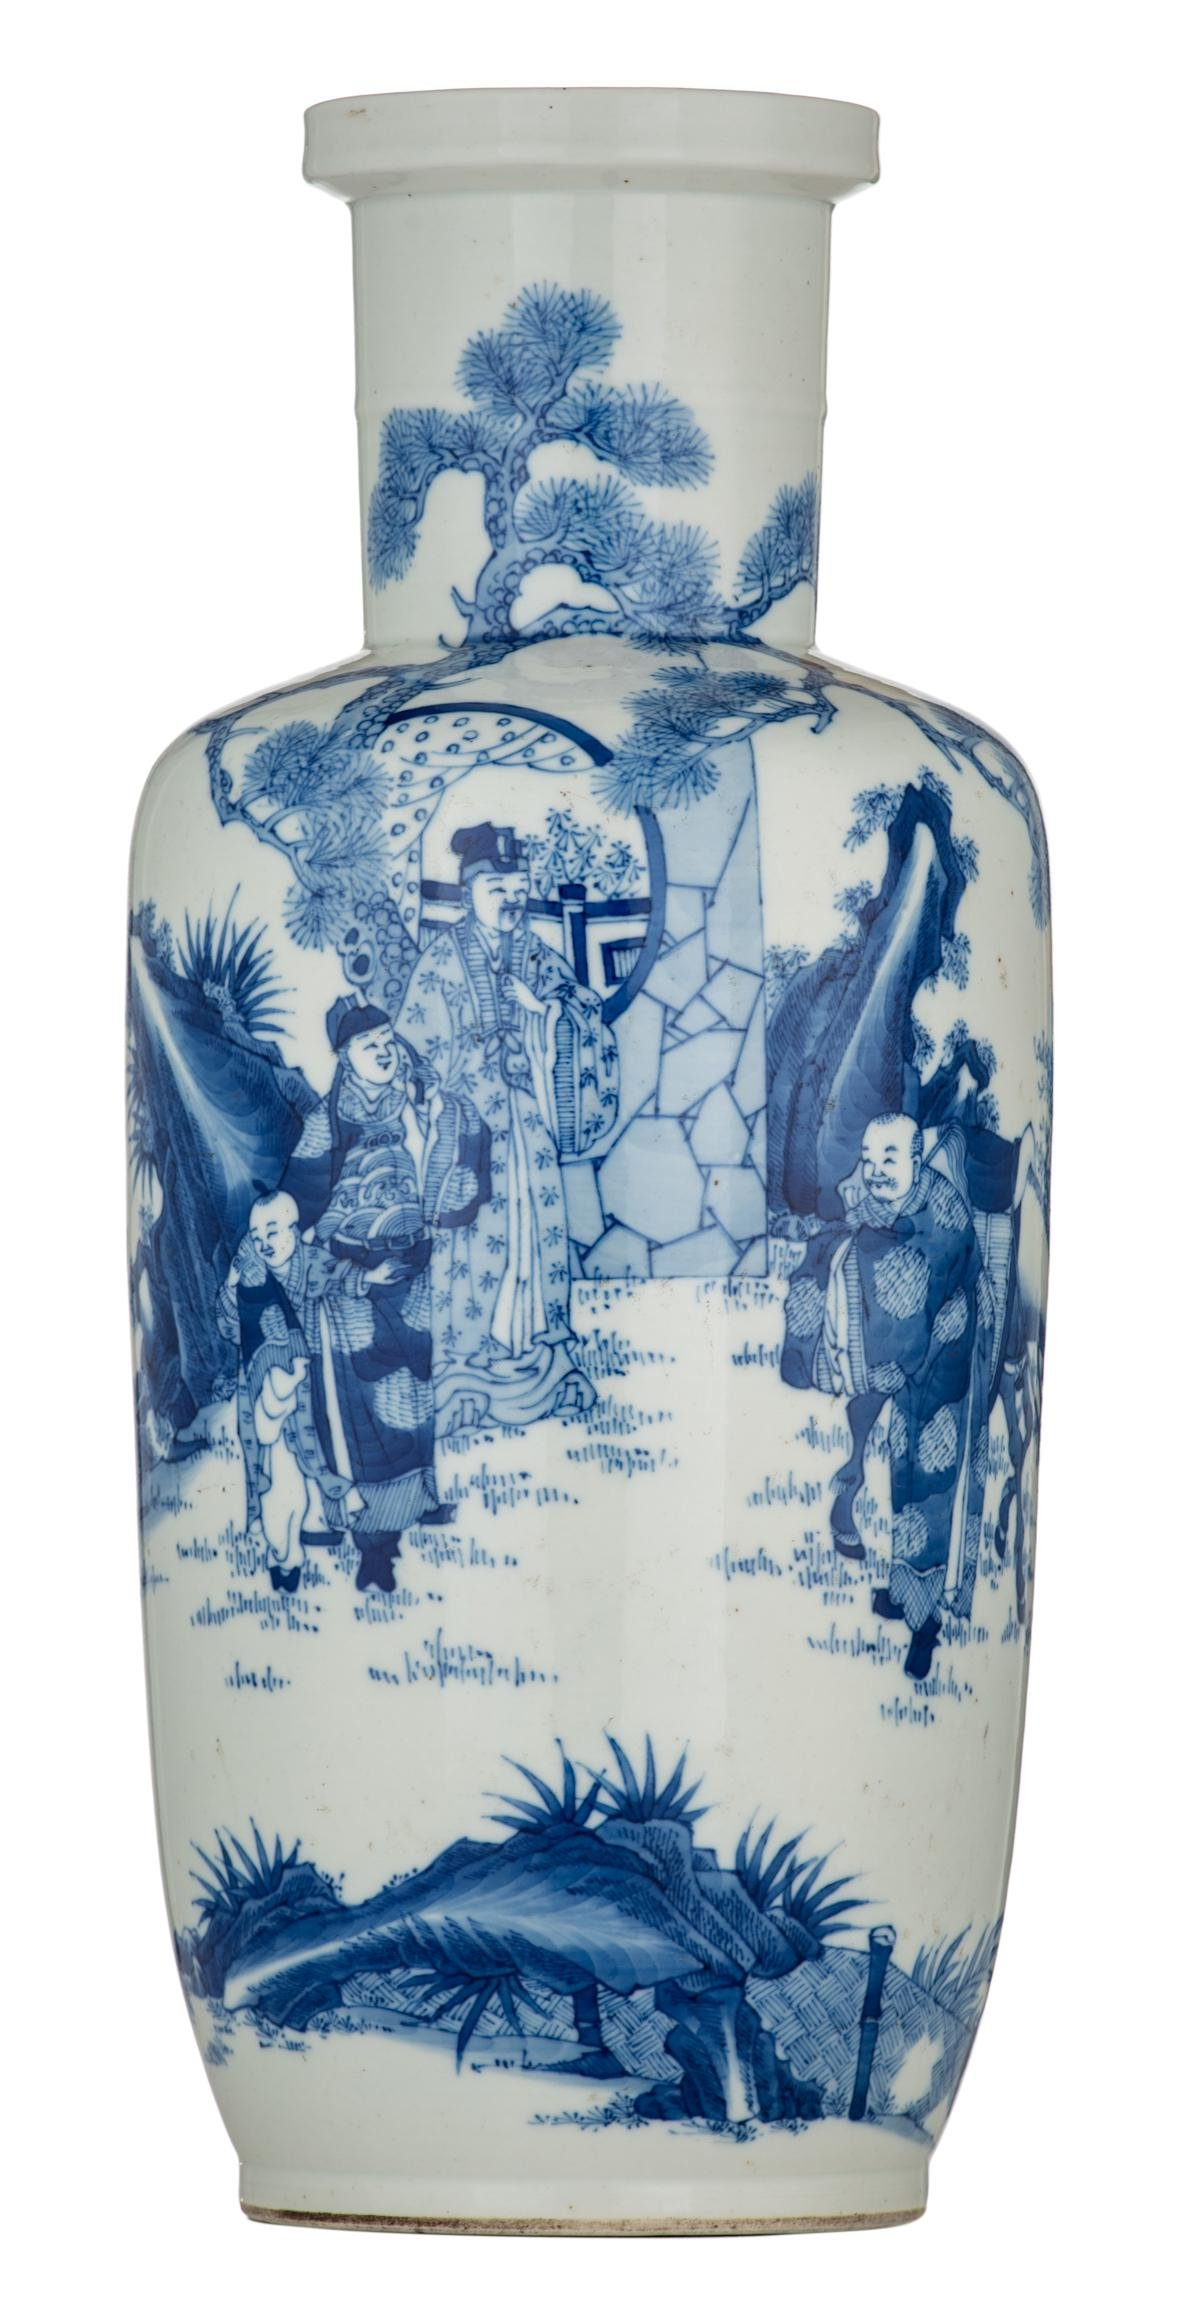 A Chinese blue and white rouleau vase decorated with a